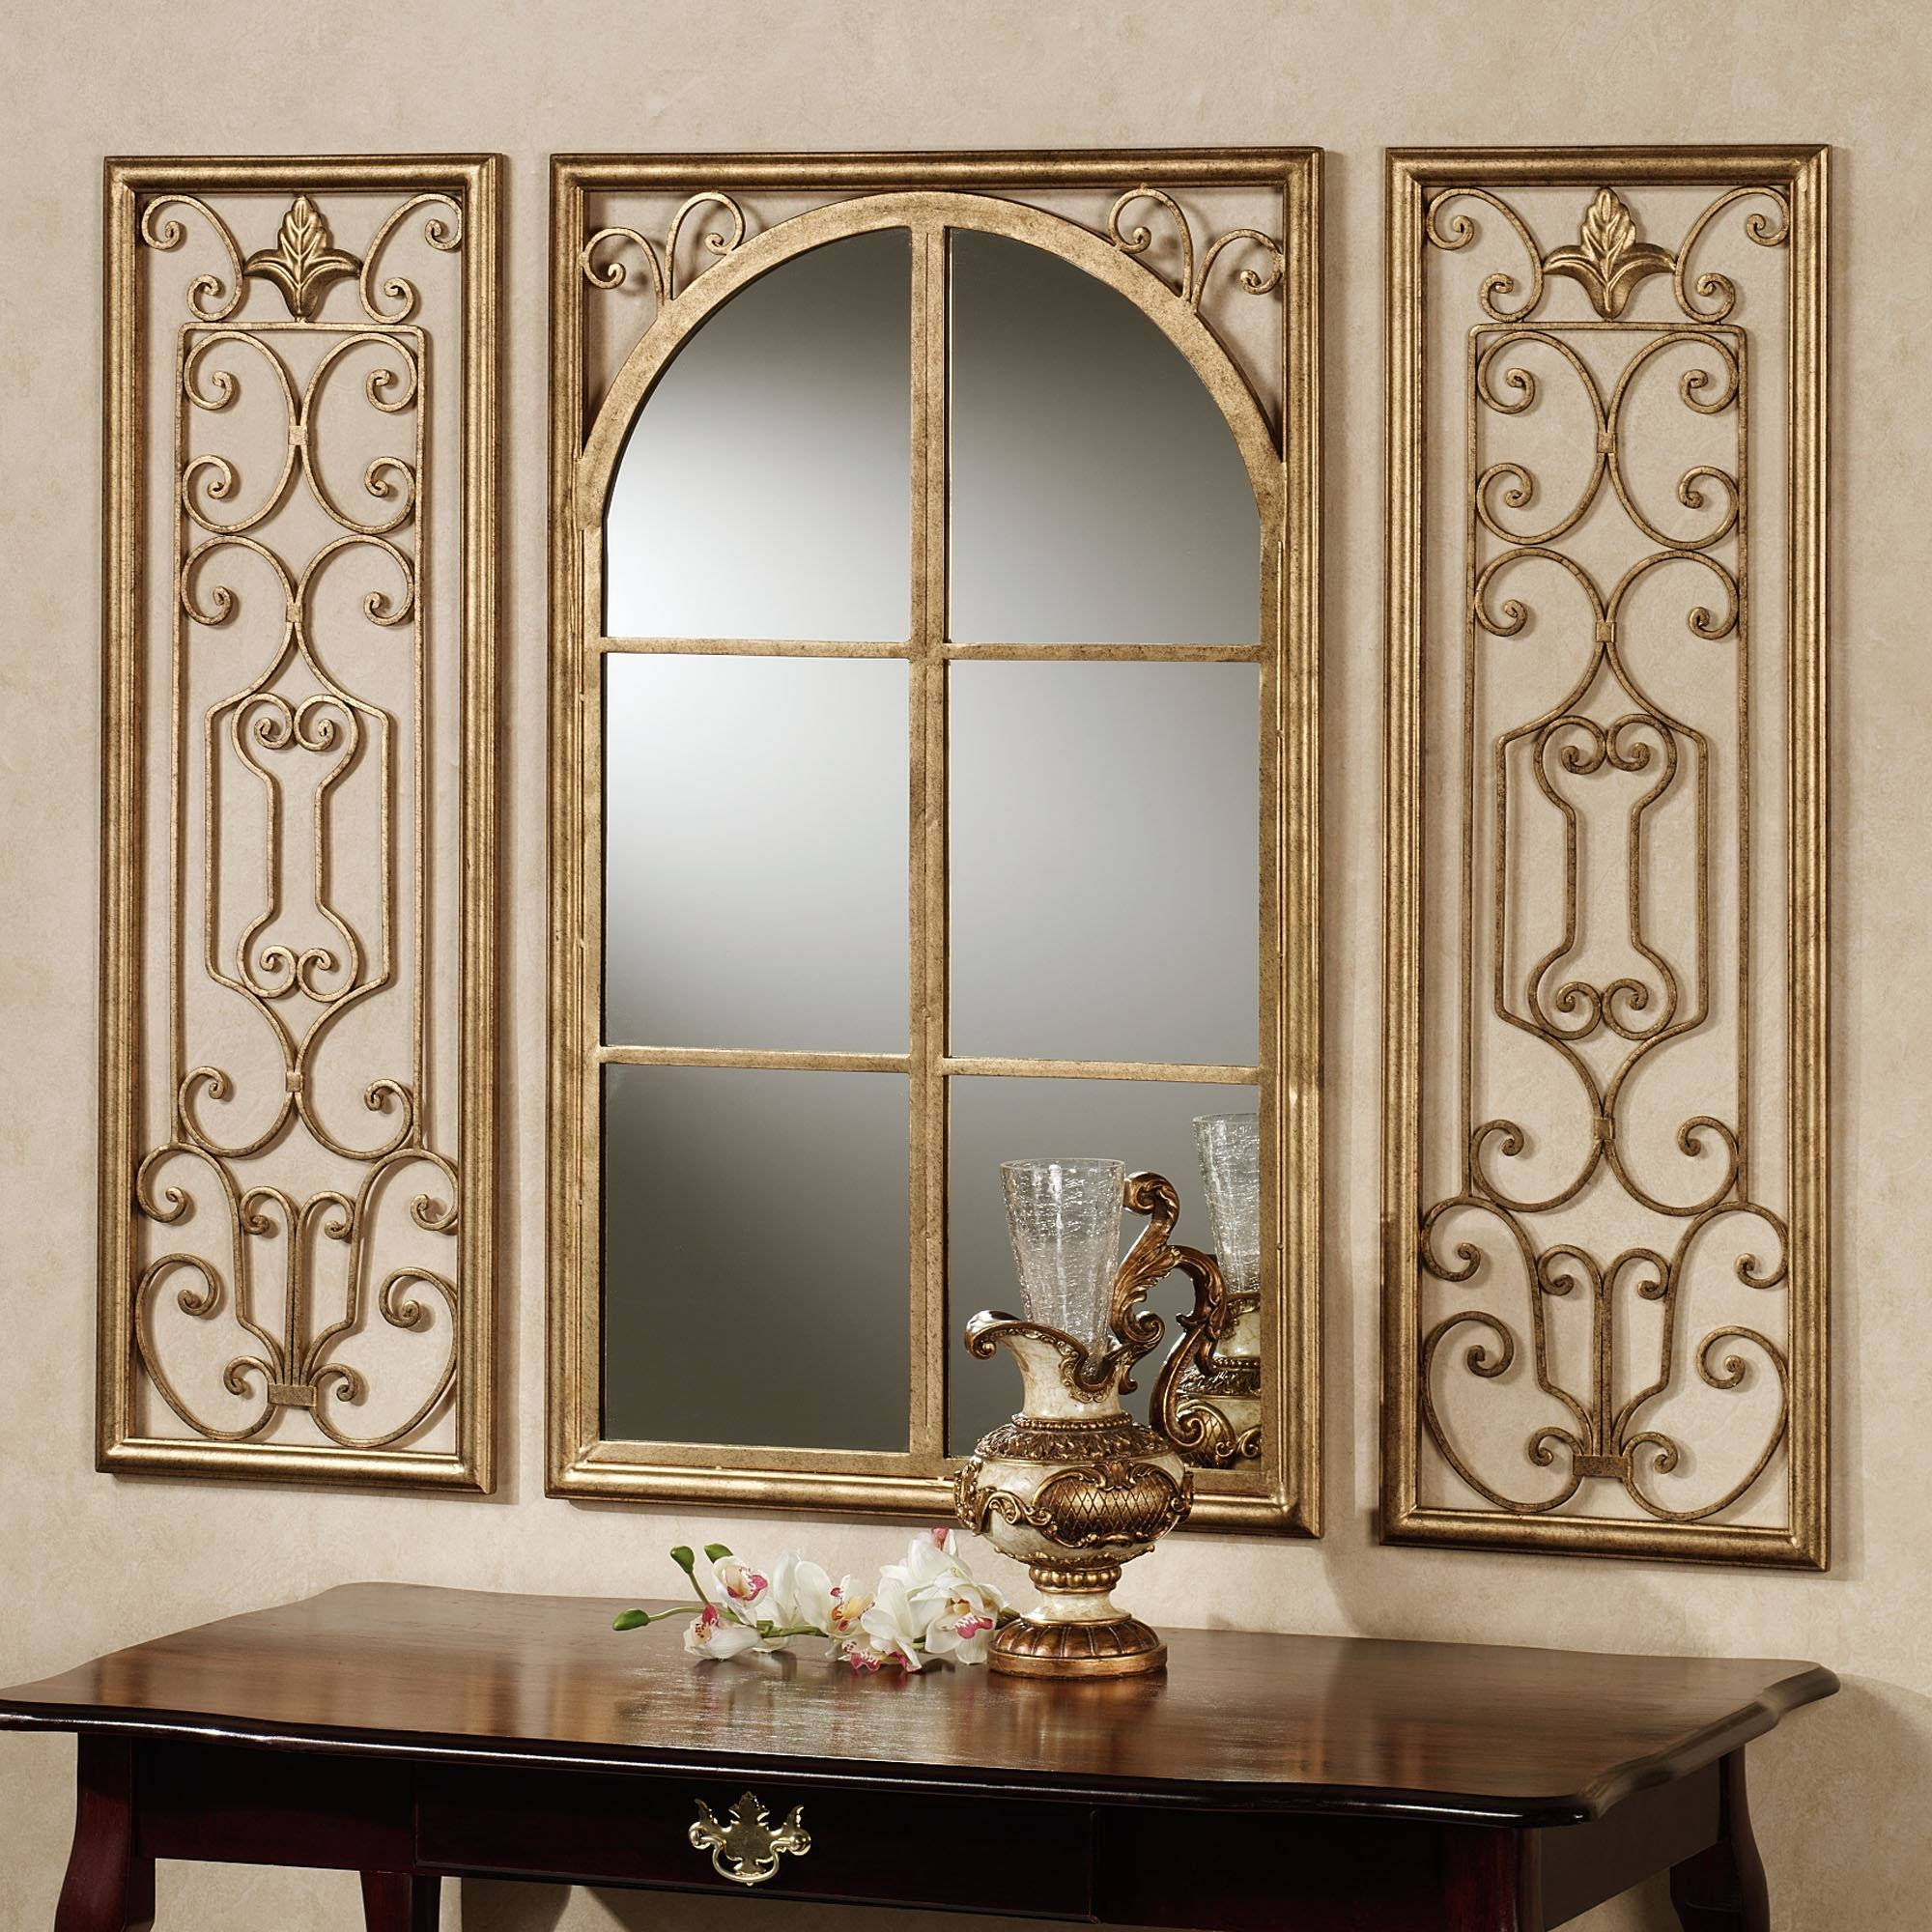 Large Decorative Mirrors With Specific Design To Beautify | The Within Large Ornate Wall Mirrors (View 15 of 15)